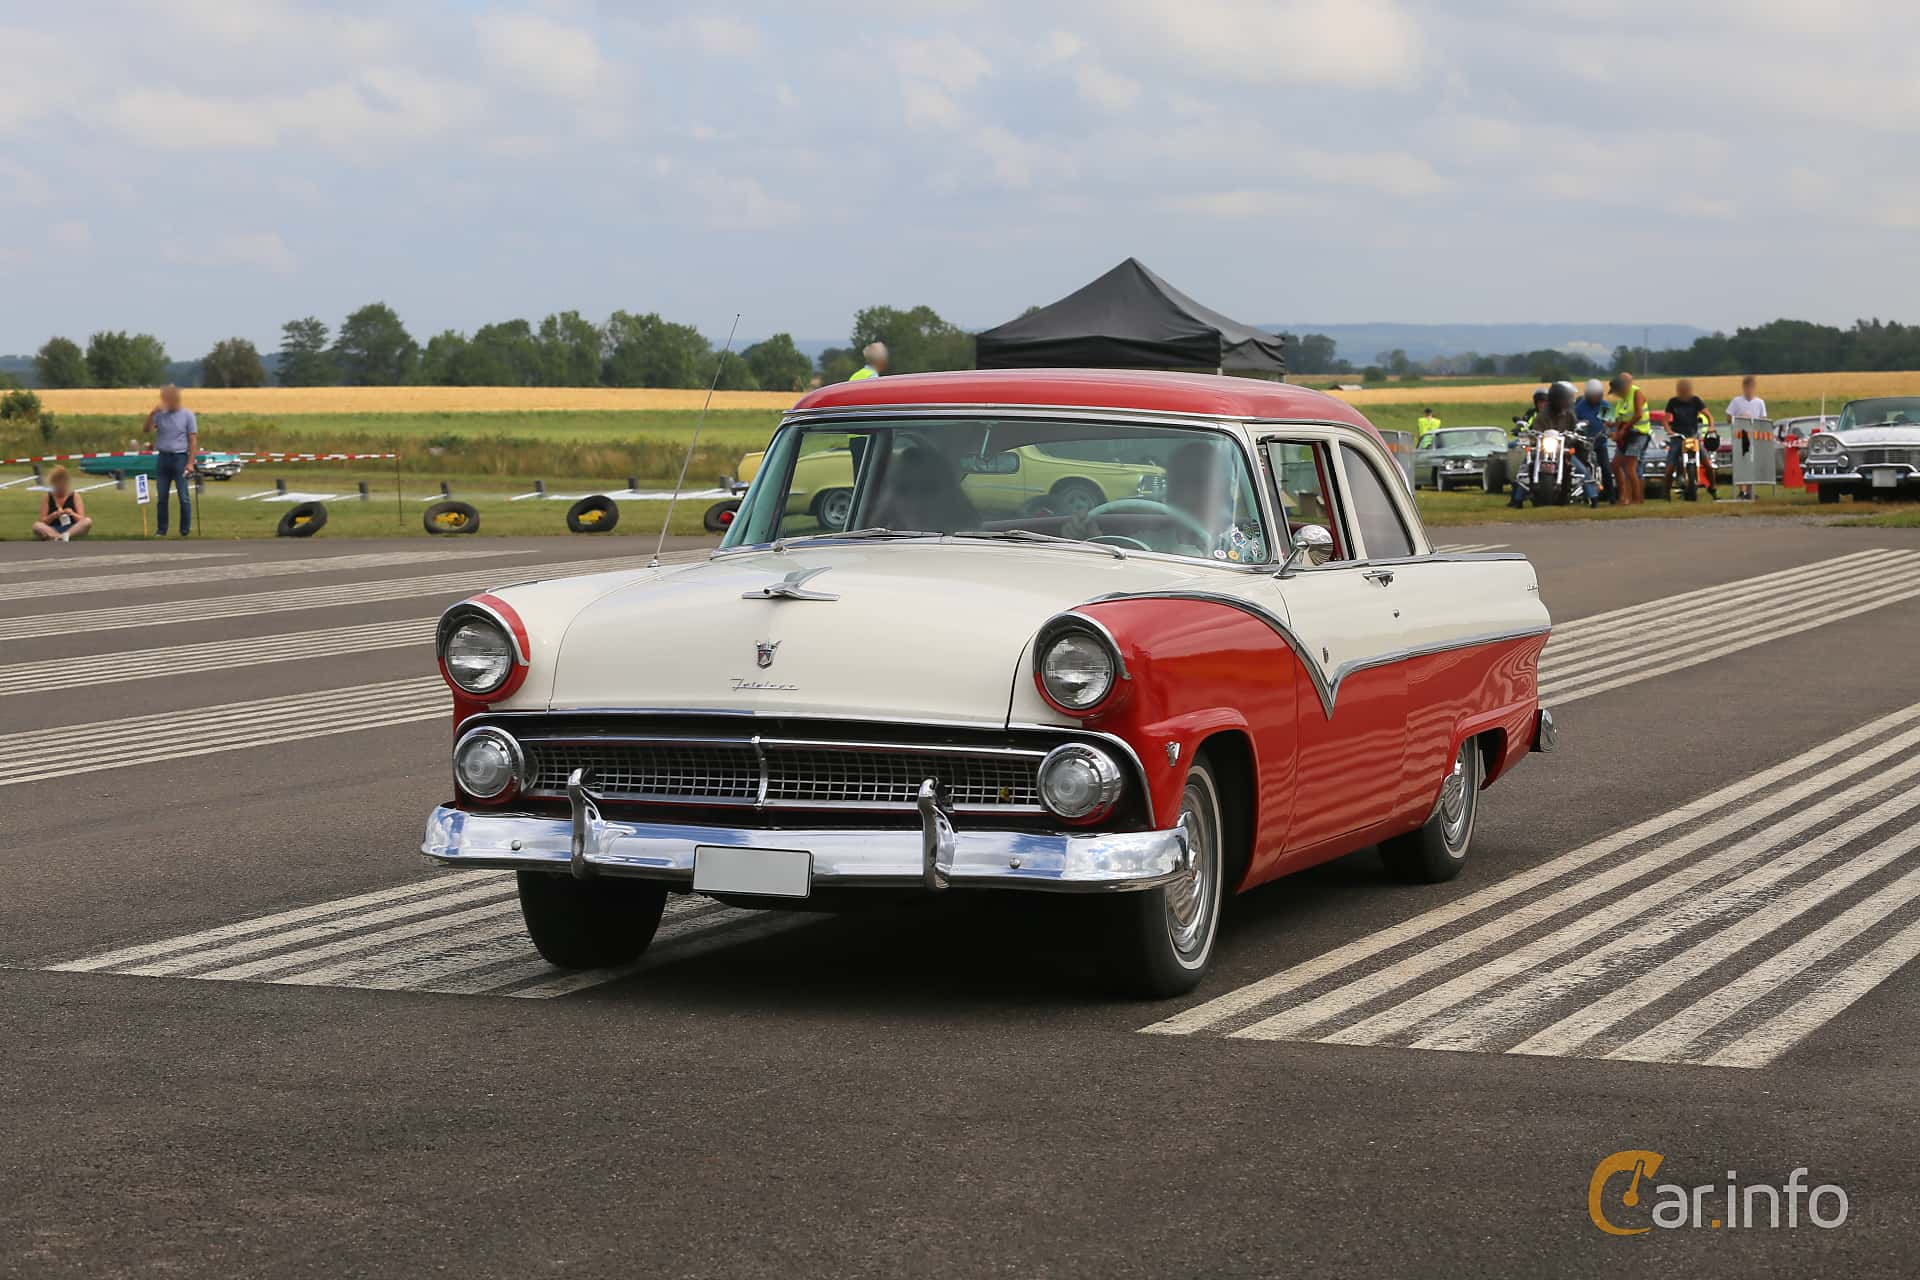 Ford Fairlane Club Sedan 4.5 V8 Automatic, 165hp, 1955 at Falköping Nasco Yankee Meet 2019